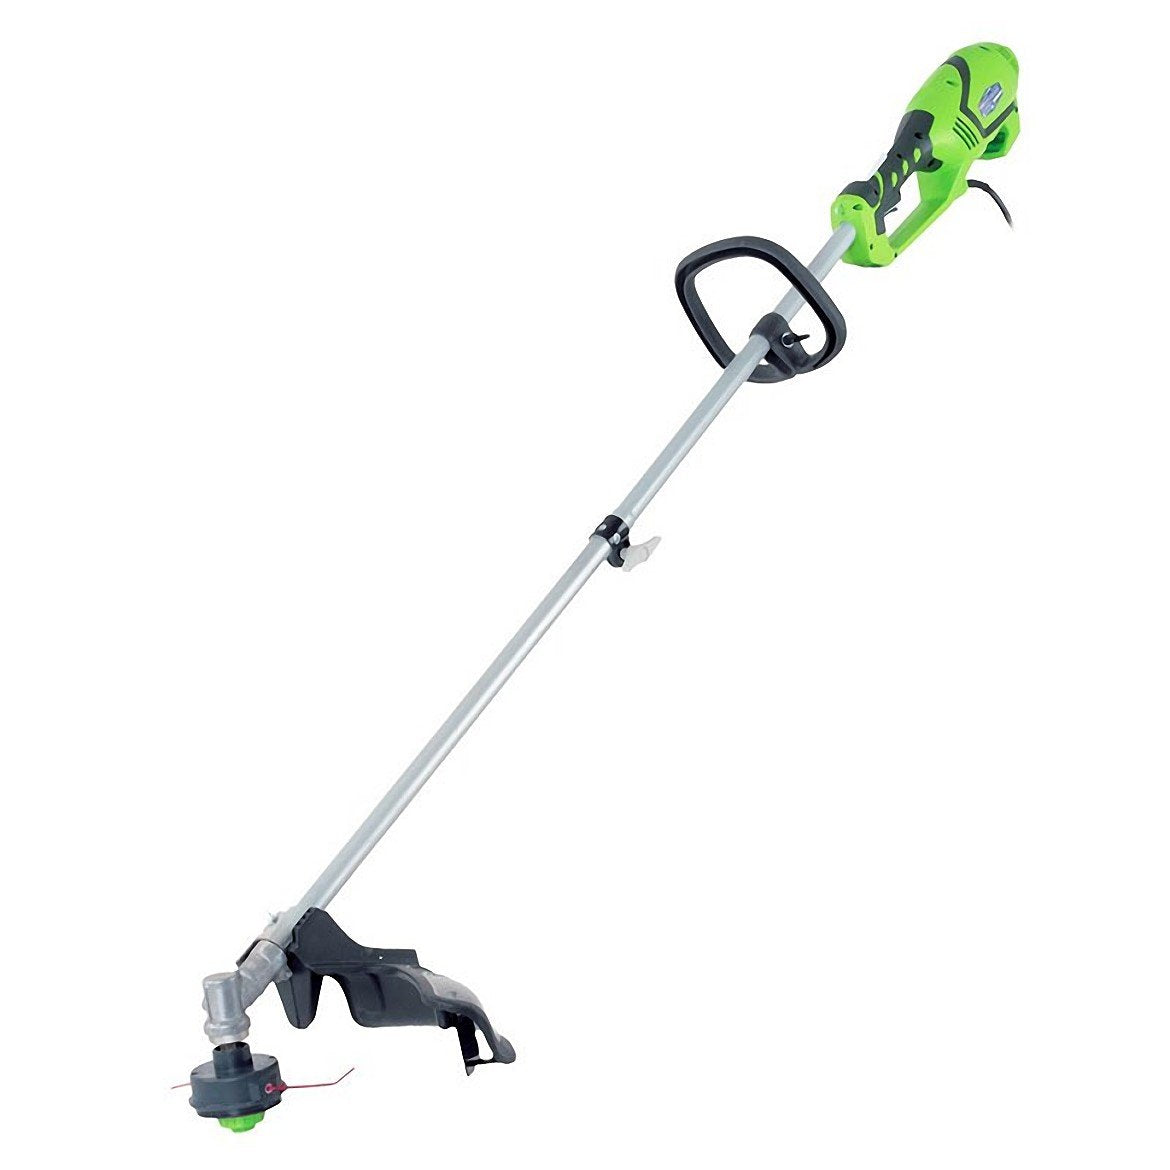 GreenWorks 21142 10A 18-Inch 10-Amp Electric Straight Shaft String Trimmer